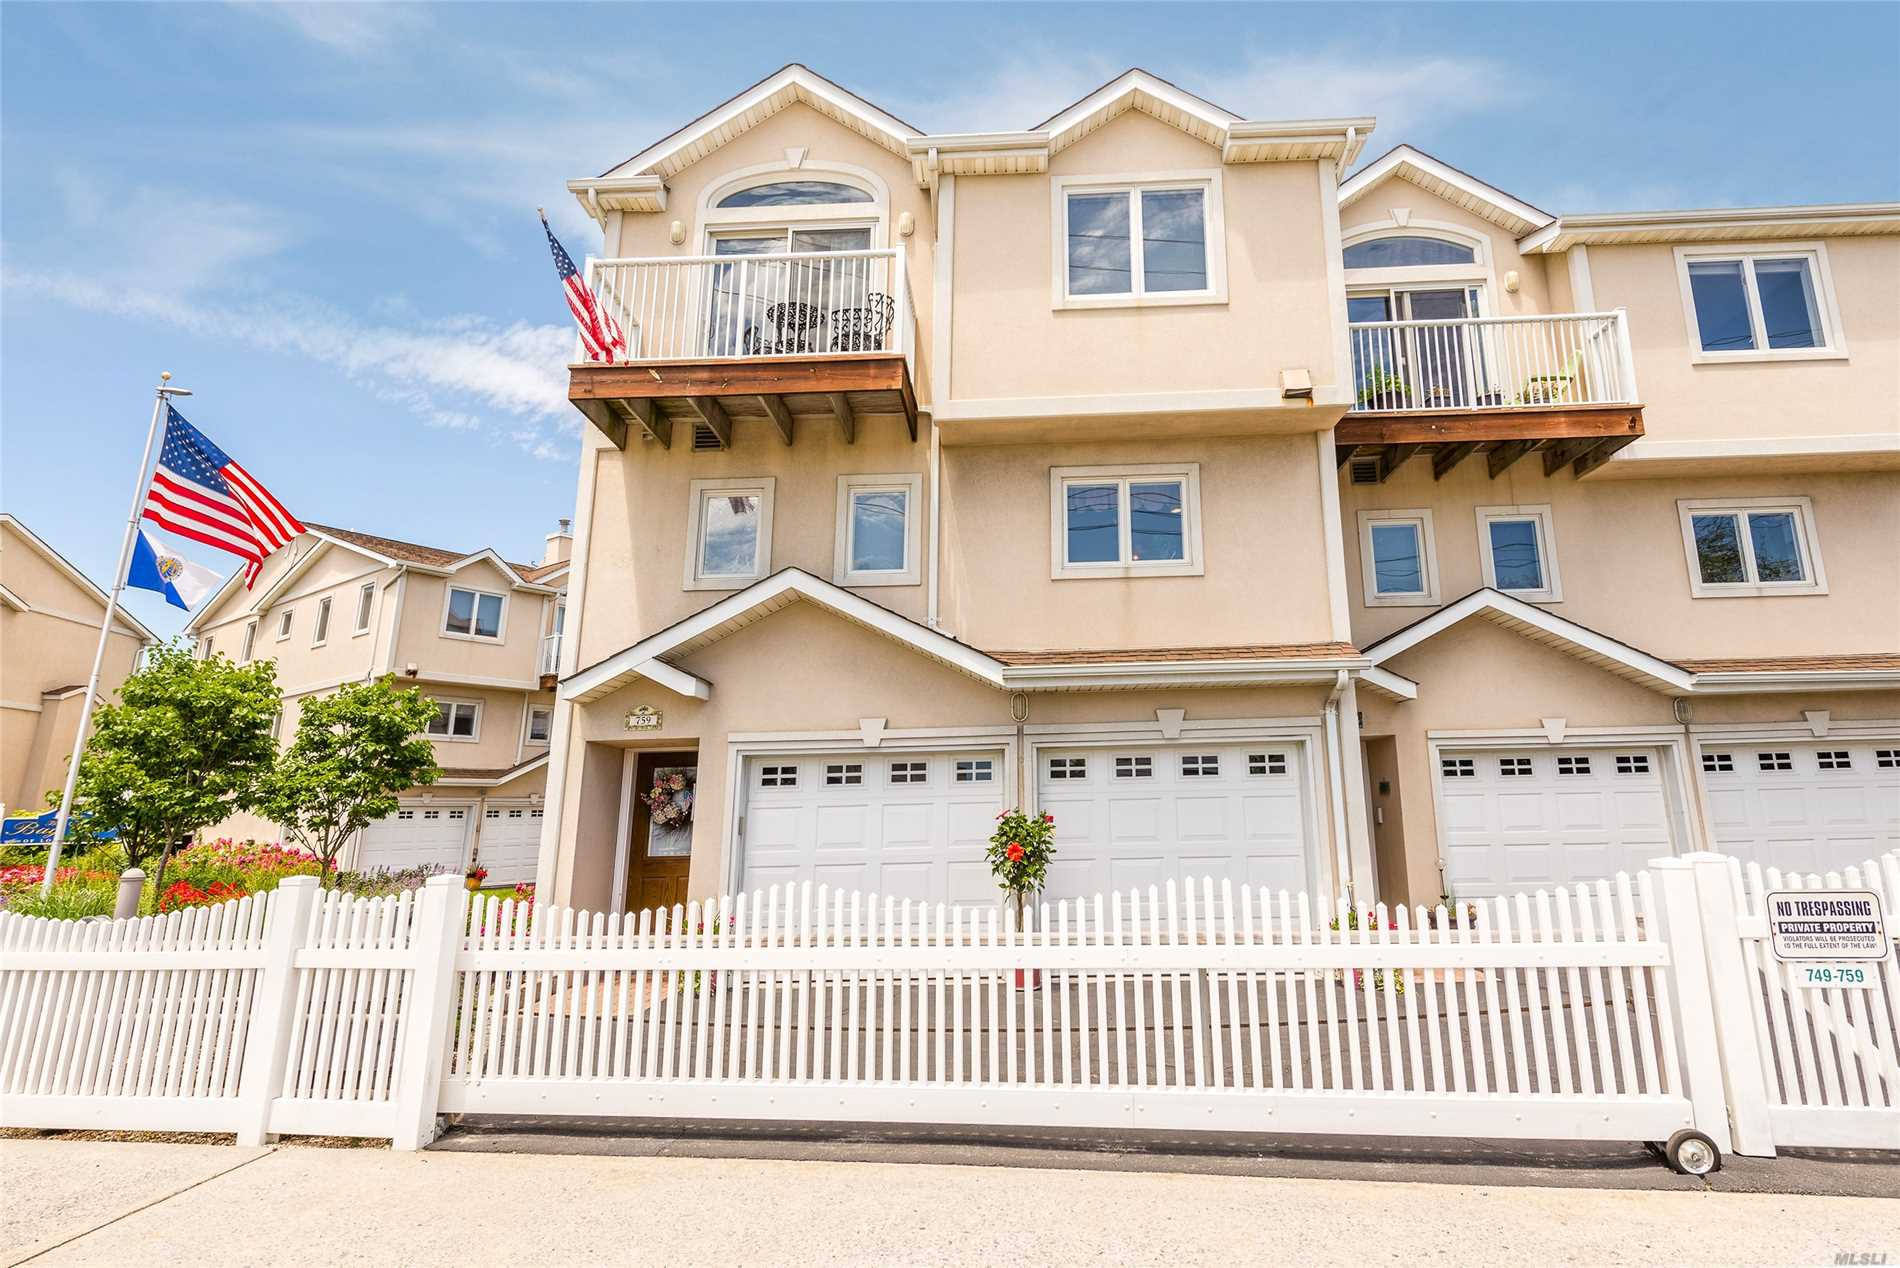 Property for sale at 759 W Park Ave, Long Beach,  NY 11561